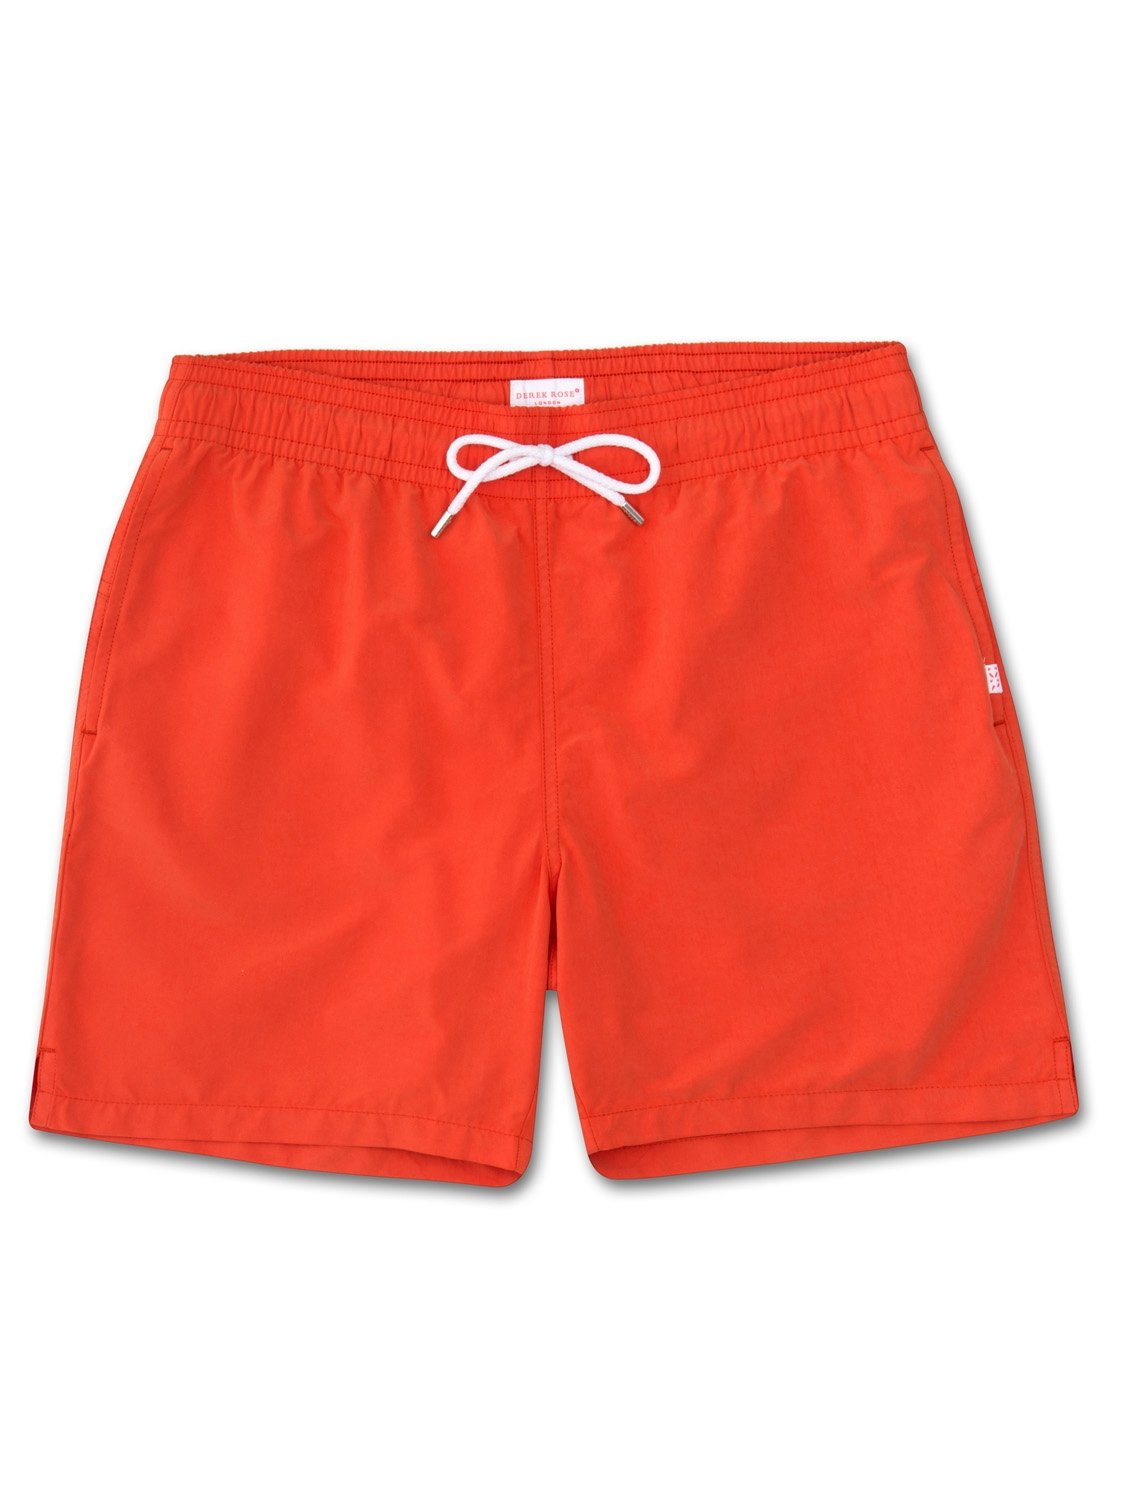 Men's Classic Fit Swim Shorts Aruba Orange